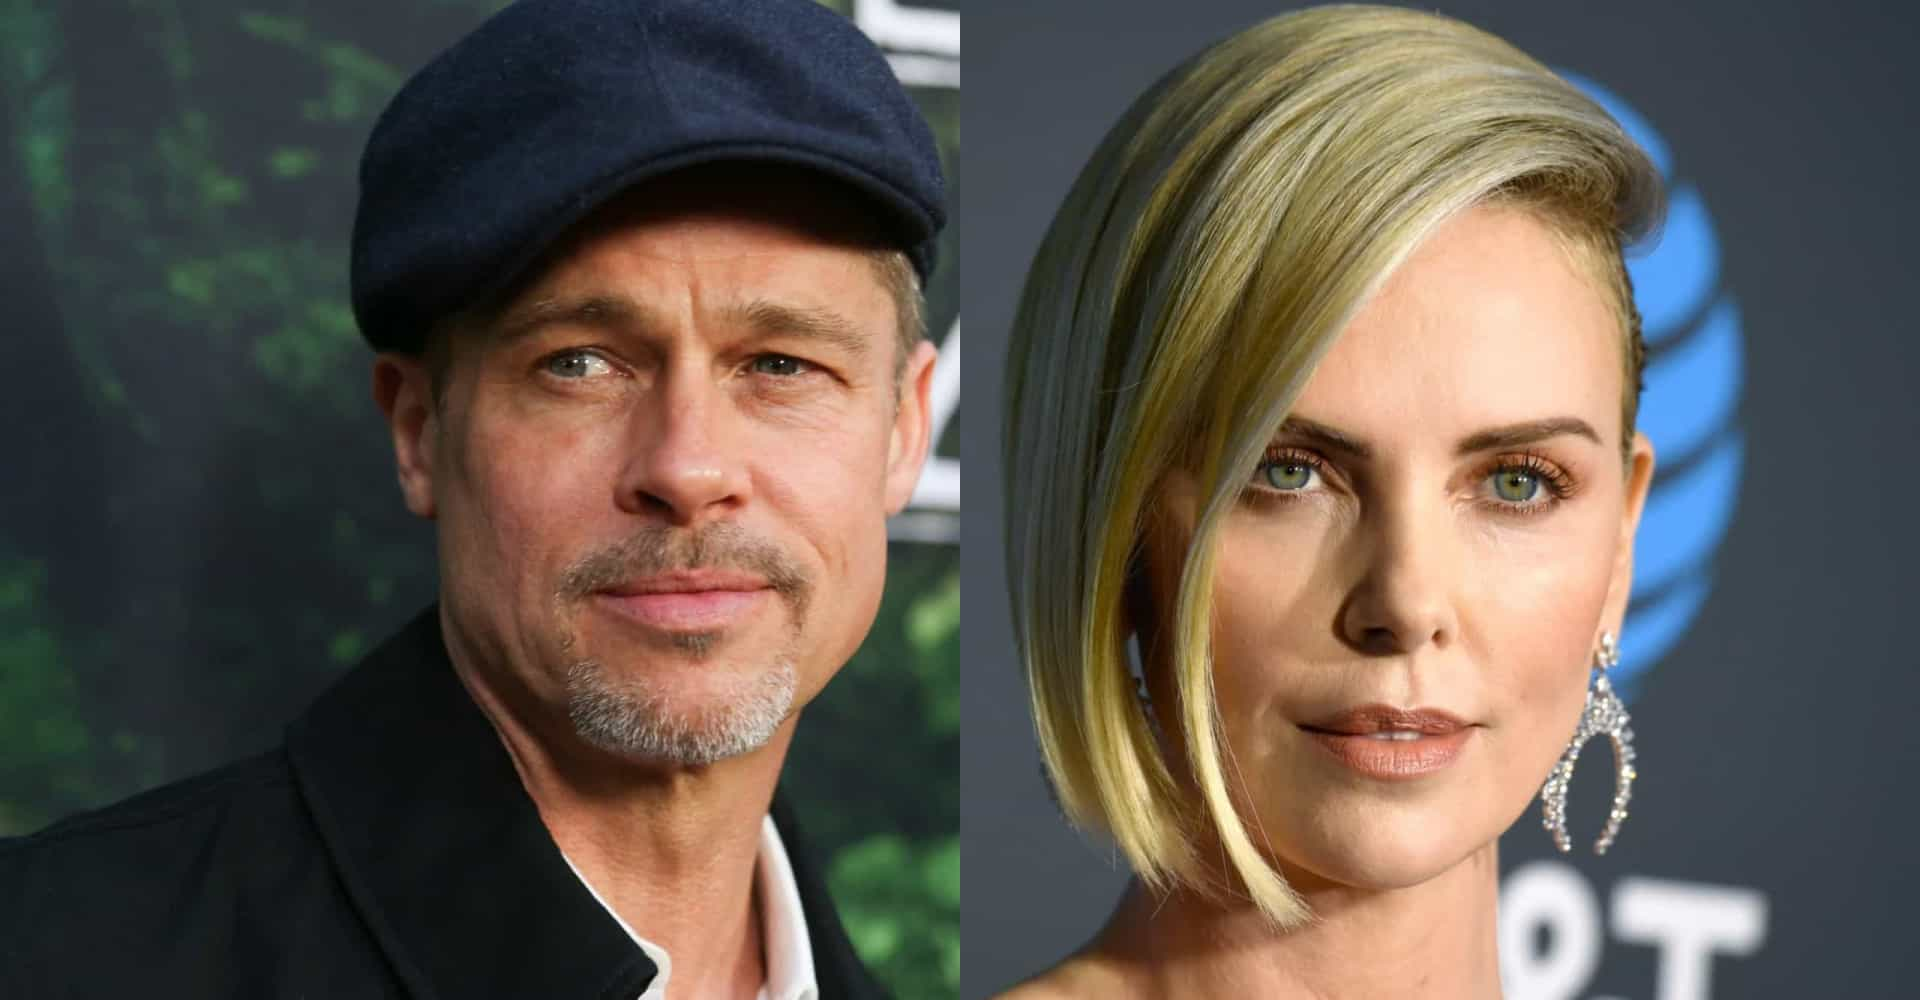 The famous women Brad Pitt has romanced